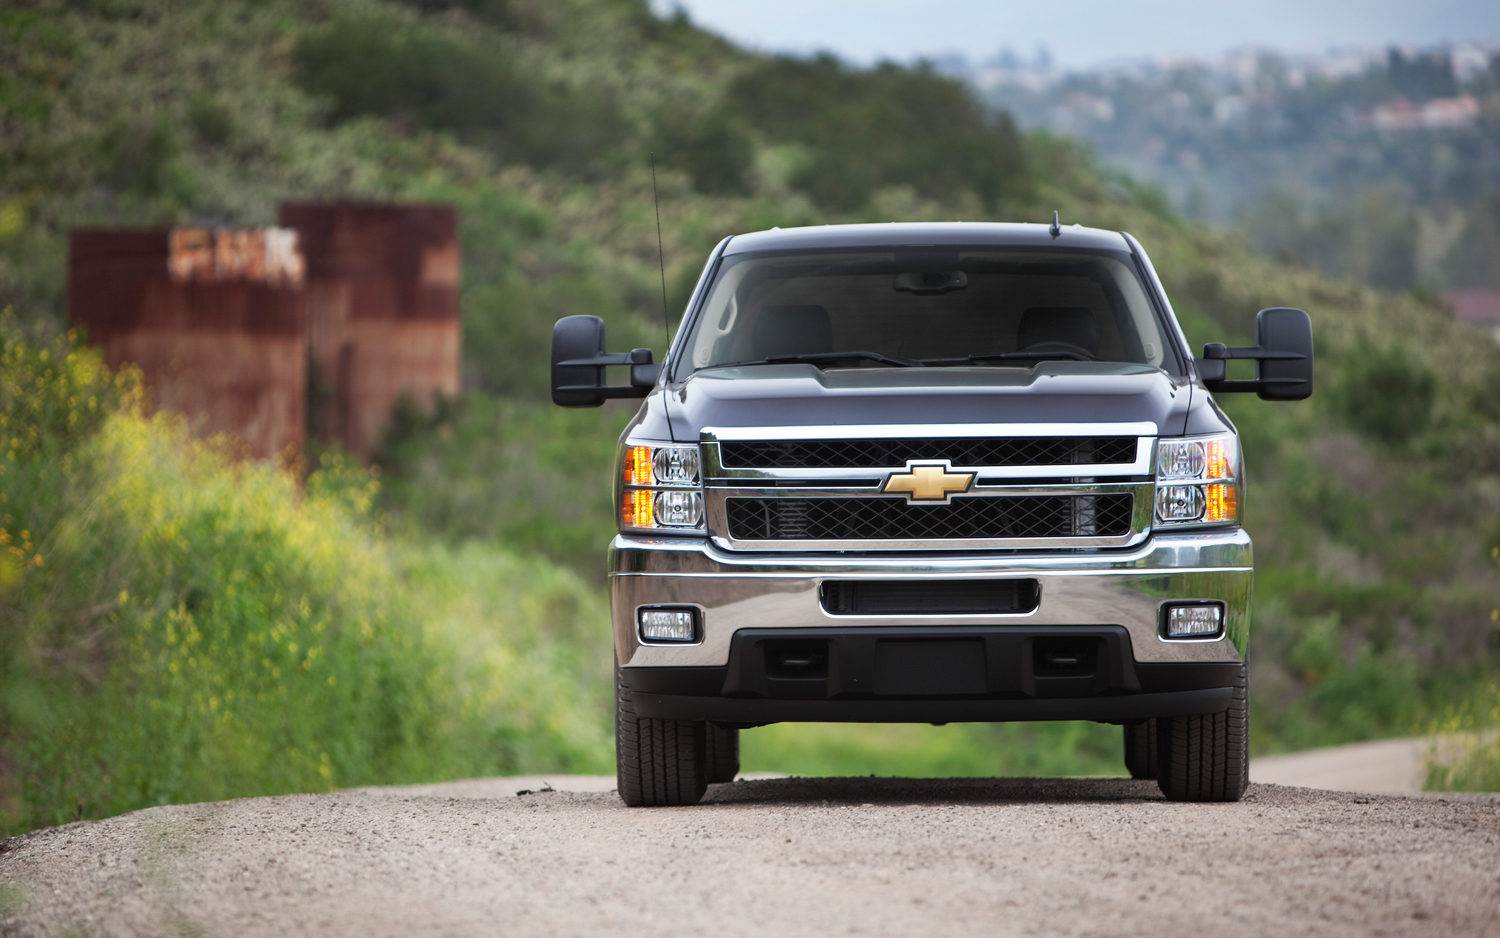 Silverado 2012 chevy silverado specs : Review: The 2012 Chevy Silverado 2500HD is rugged, comfortable ...